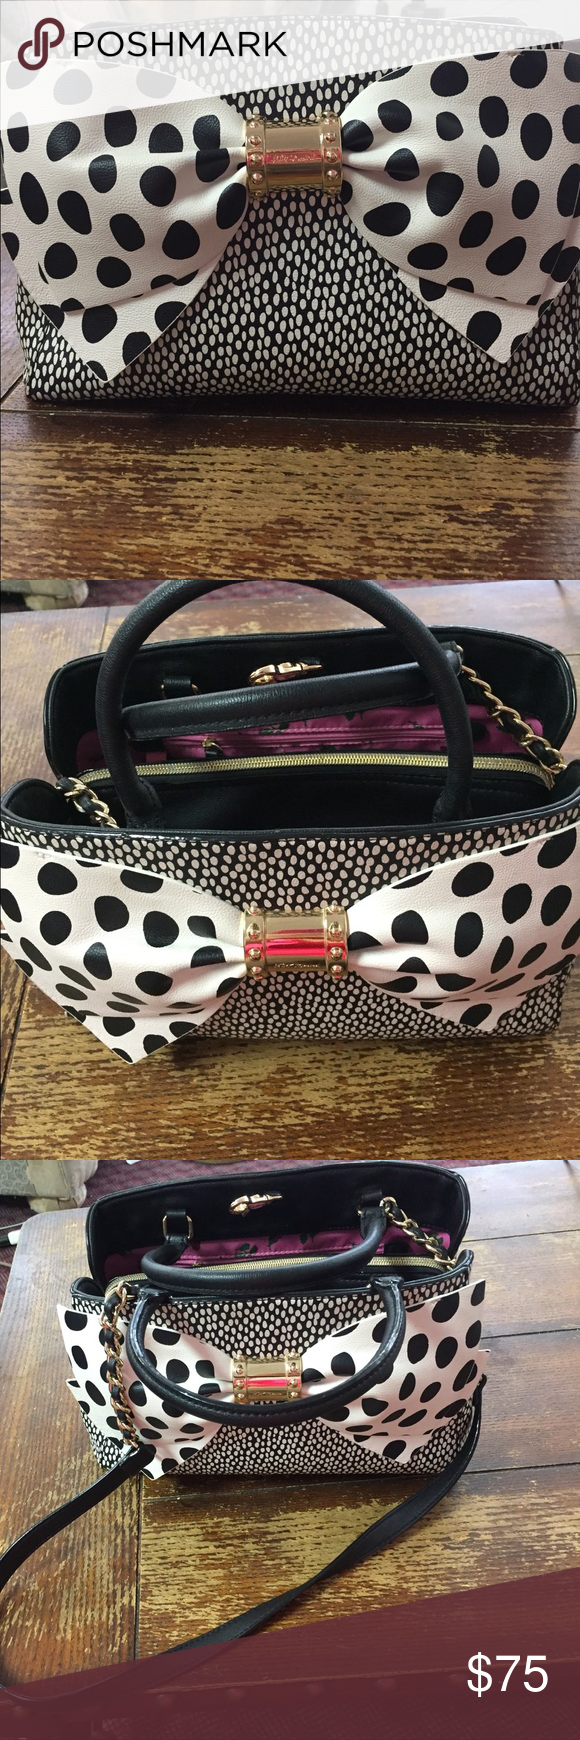 Betsey Johnson Purse Handbag / Shoulder bag 💼 Elegant & classy Betsey Johnson purse. This bag is in excellent used condition. There are no holes, tears or stains on the leather. The inside is very clean. There are one or two pencil/makeup brush markings on the bottom of the lining on the inside, but overall the purse is in near perfect condition. The bag has 3 compartments, one  is a large zippered compartment in the middle. Each of the other compartments have a smaller pouch for storage as…